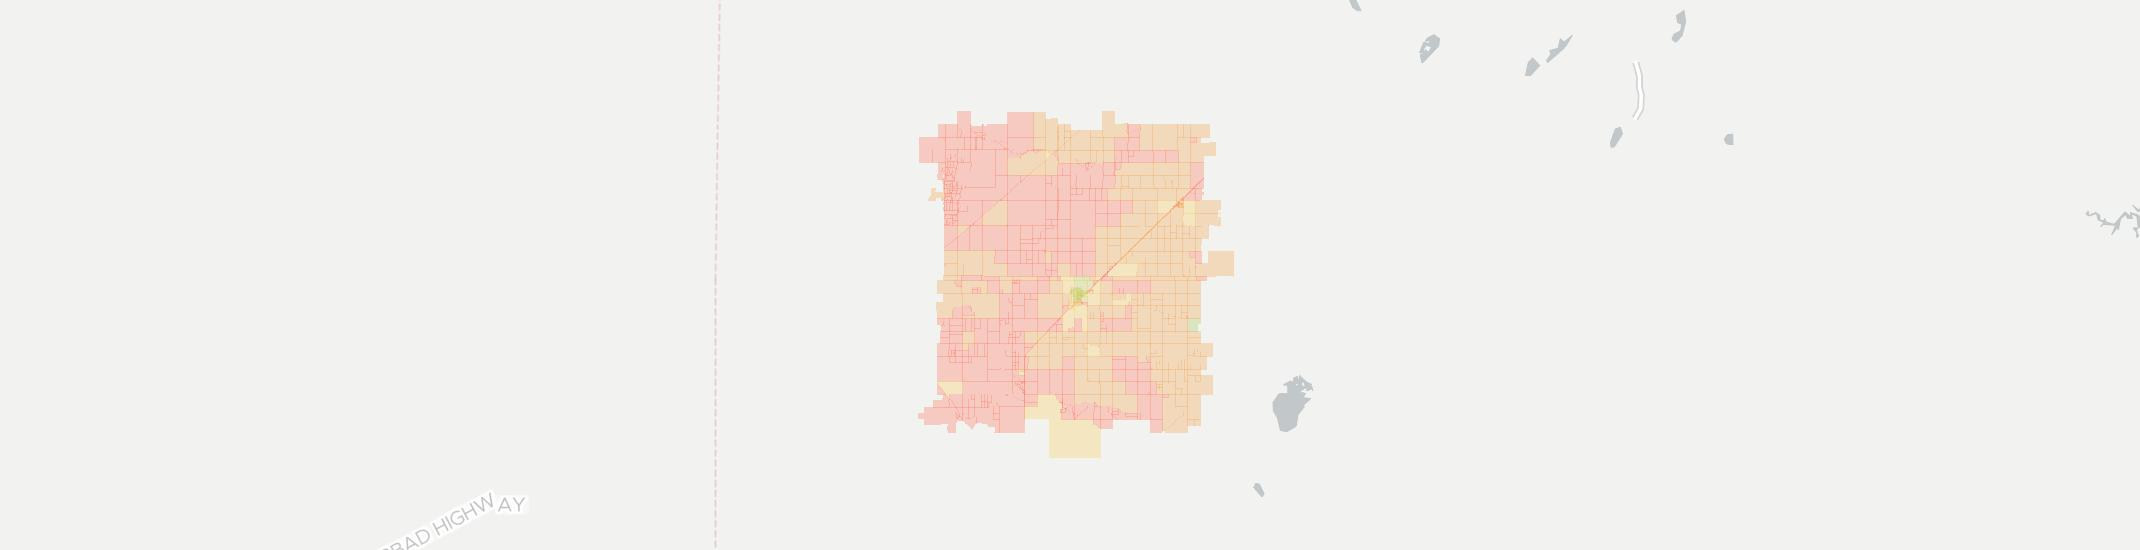 Seagraves Internet Competition Map. Click for interactive map.